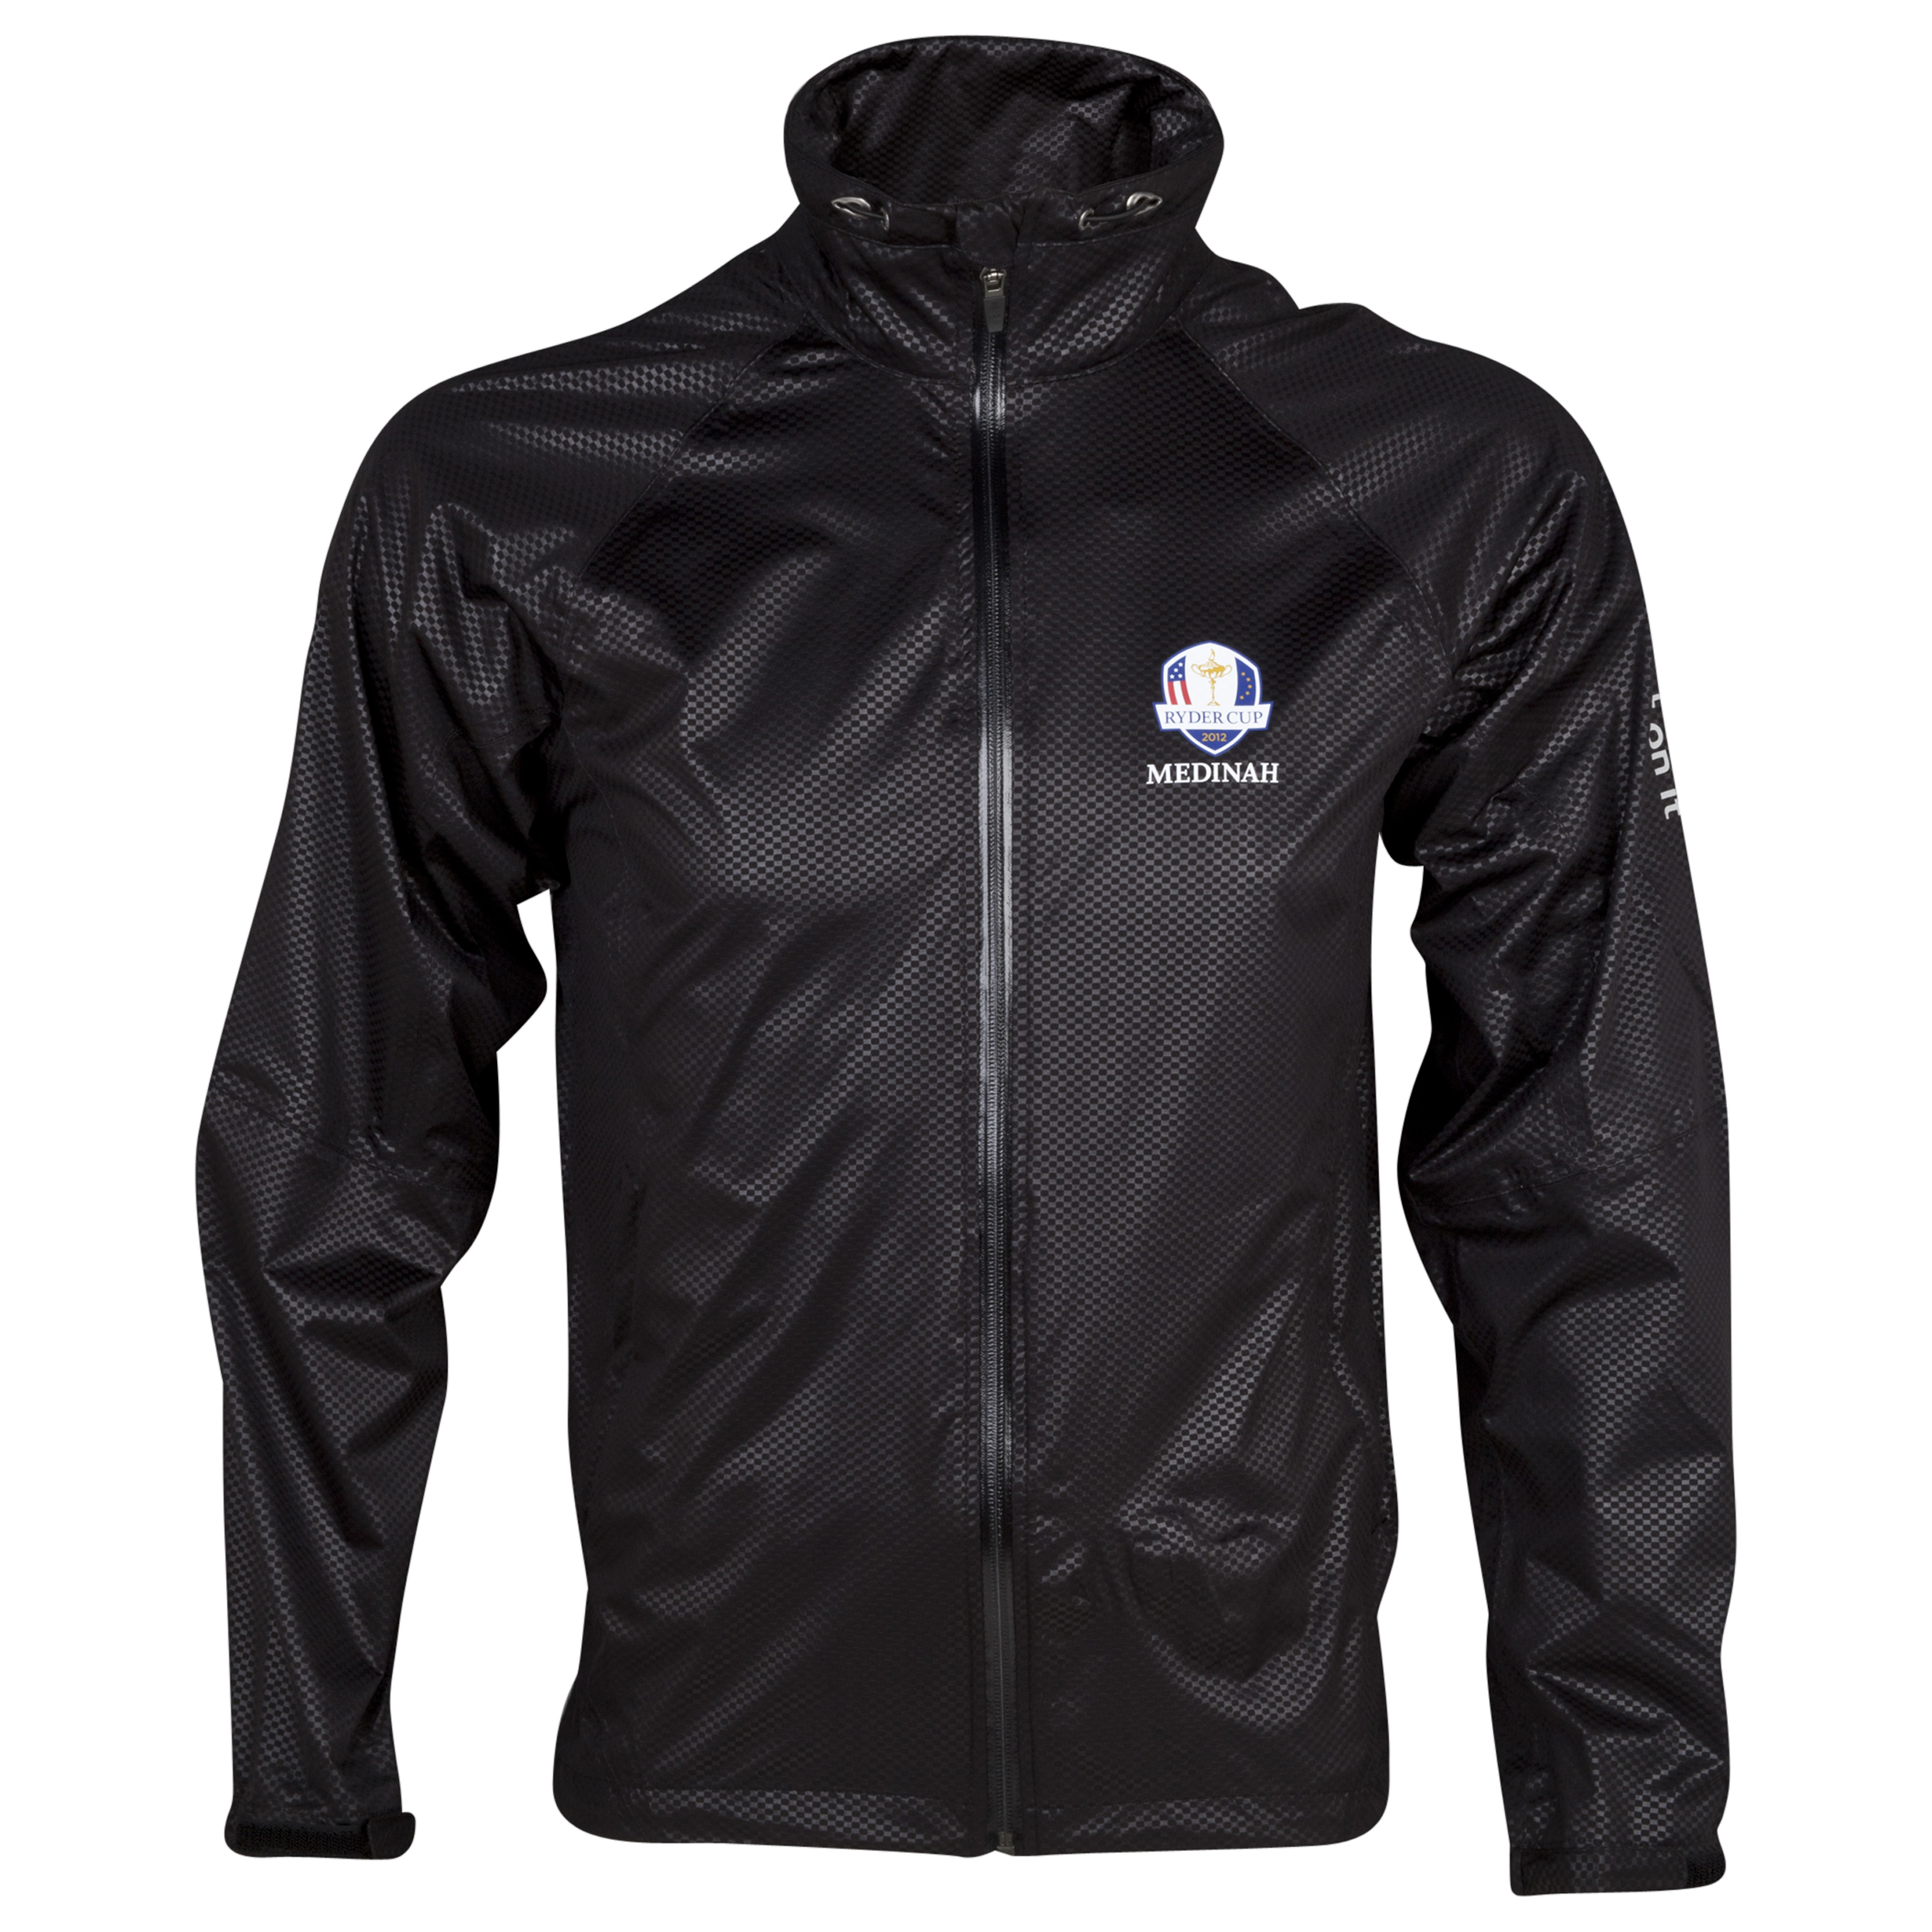 The 2012 Ryder Cup abacus Barton Stretchlite Rain Jacket - Black